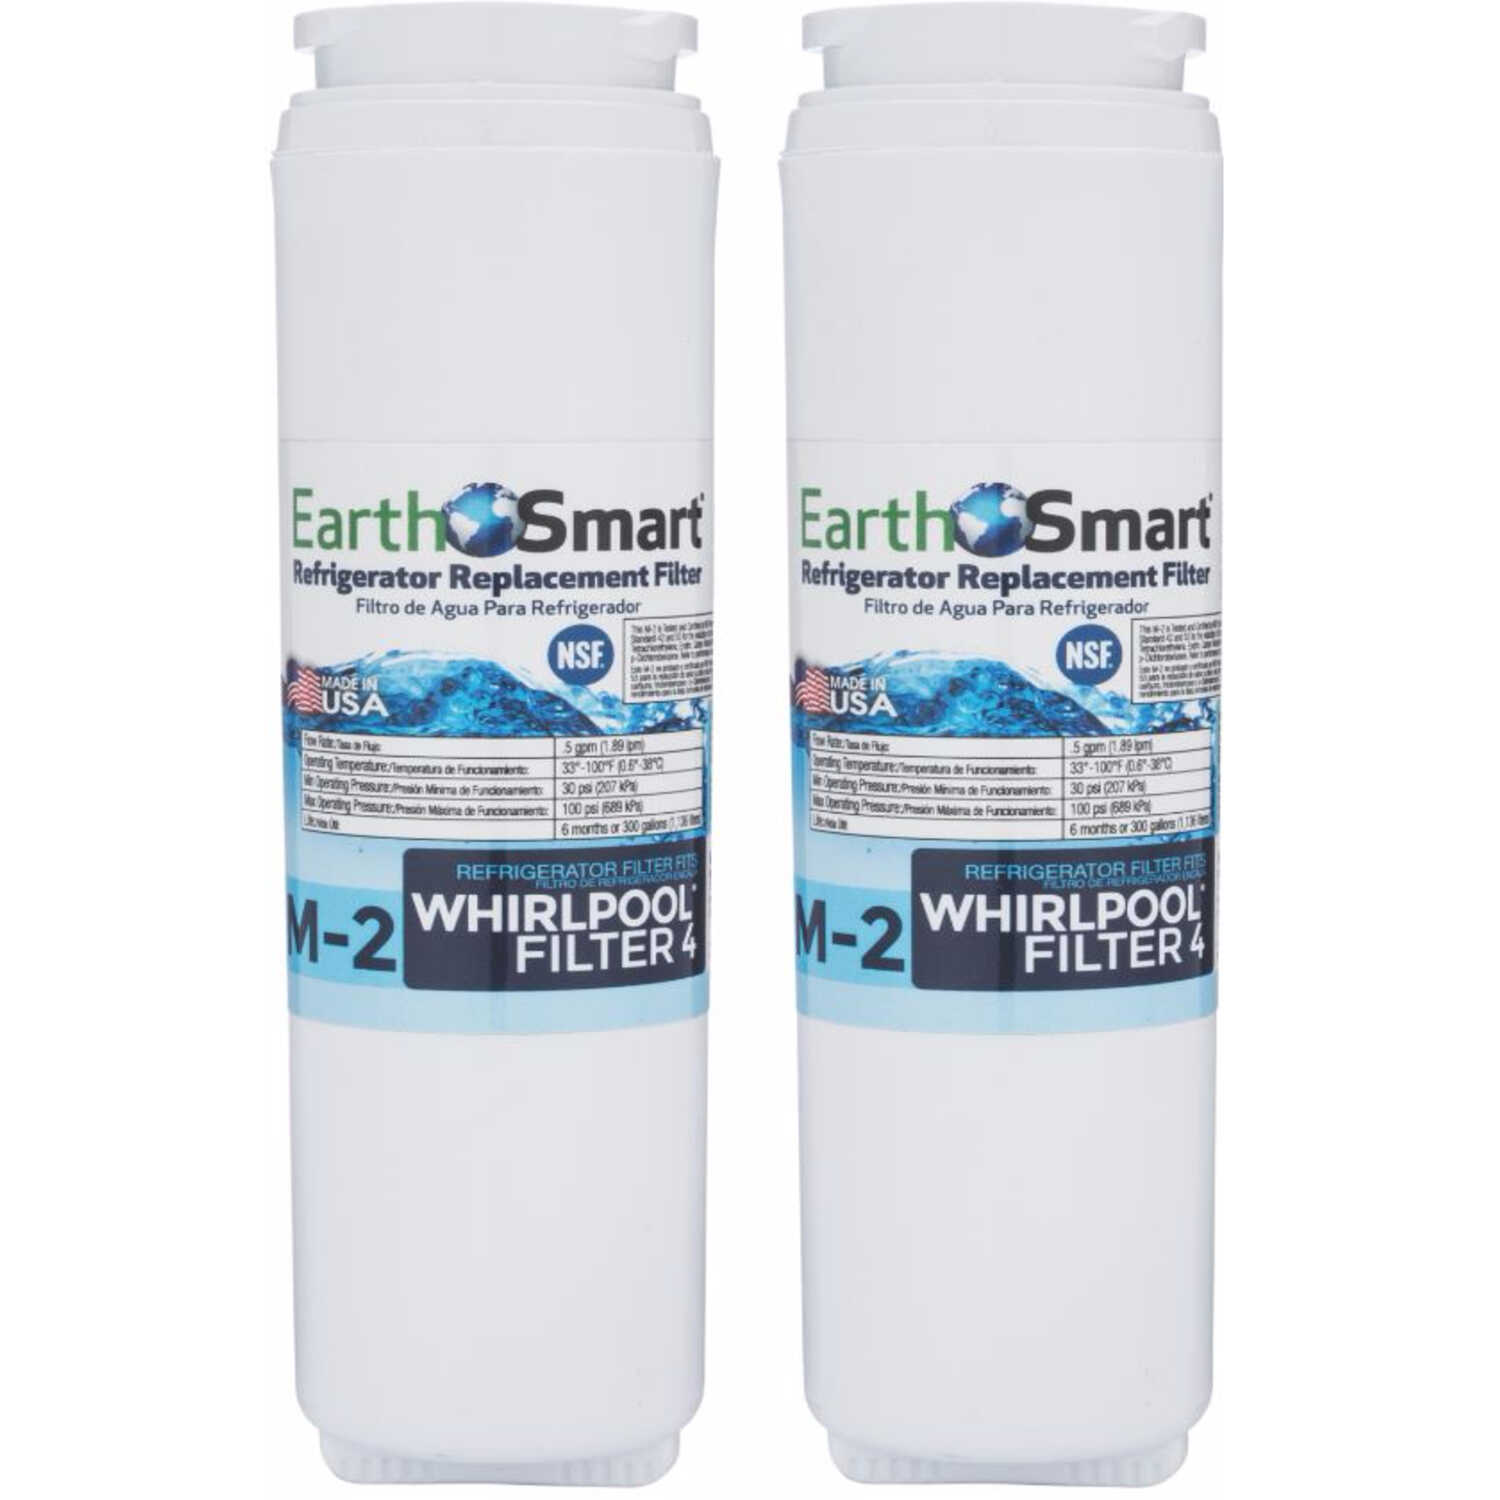 EarthSmart  M-2  Replacement Filter  For Refrigerators 300 gal.